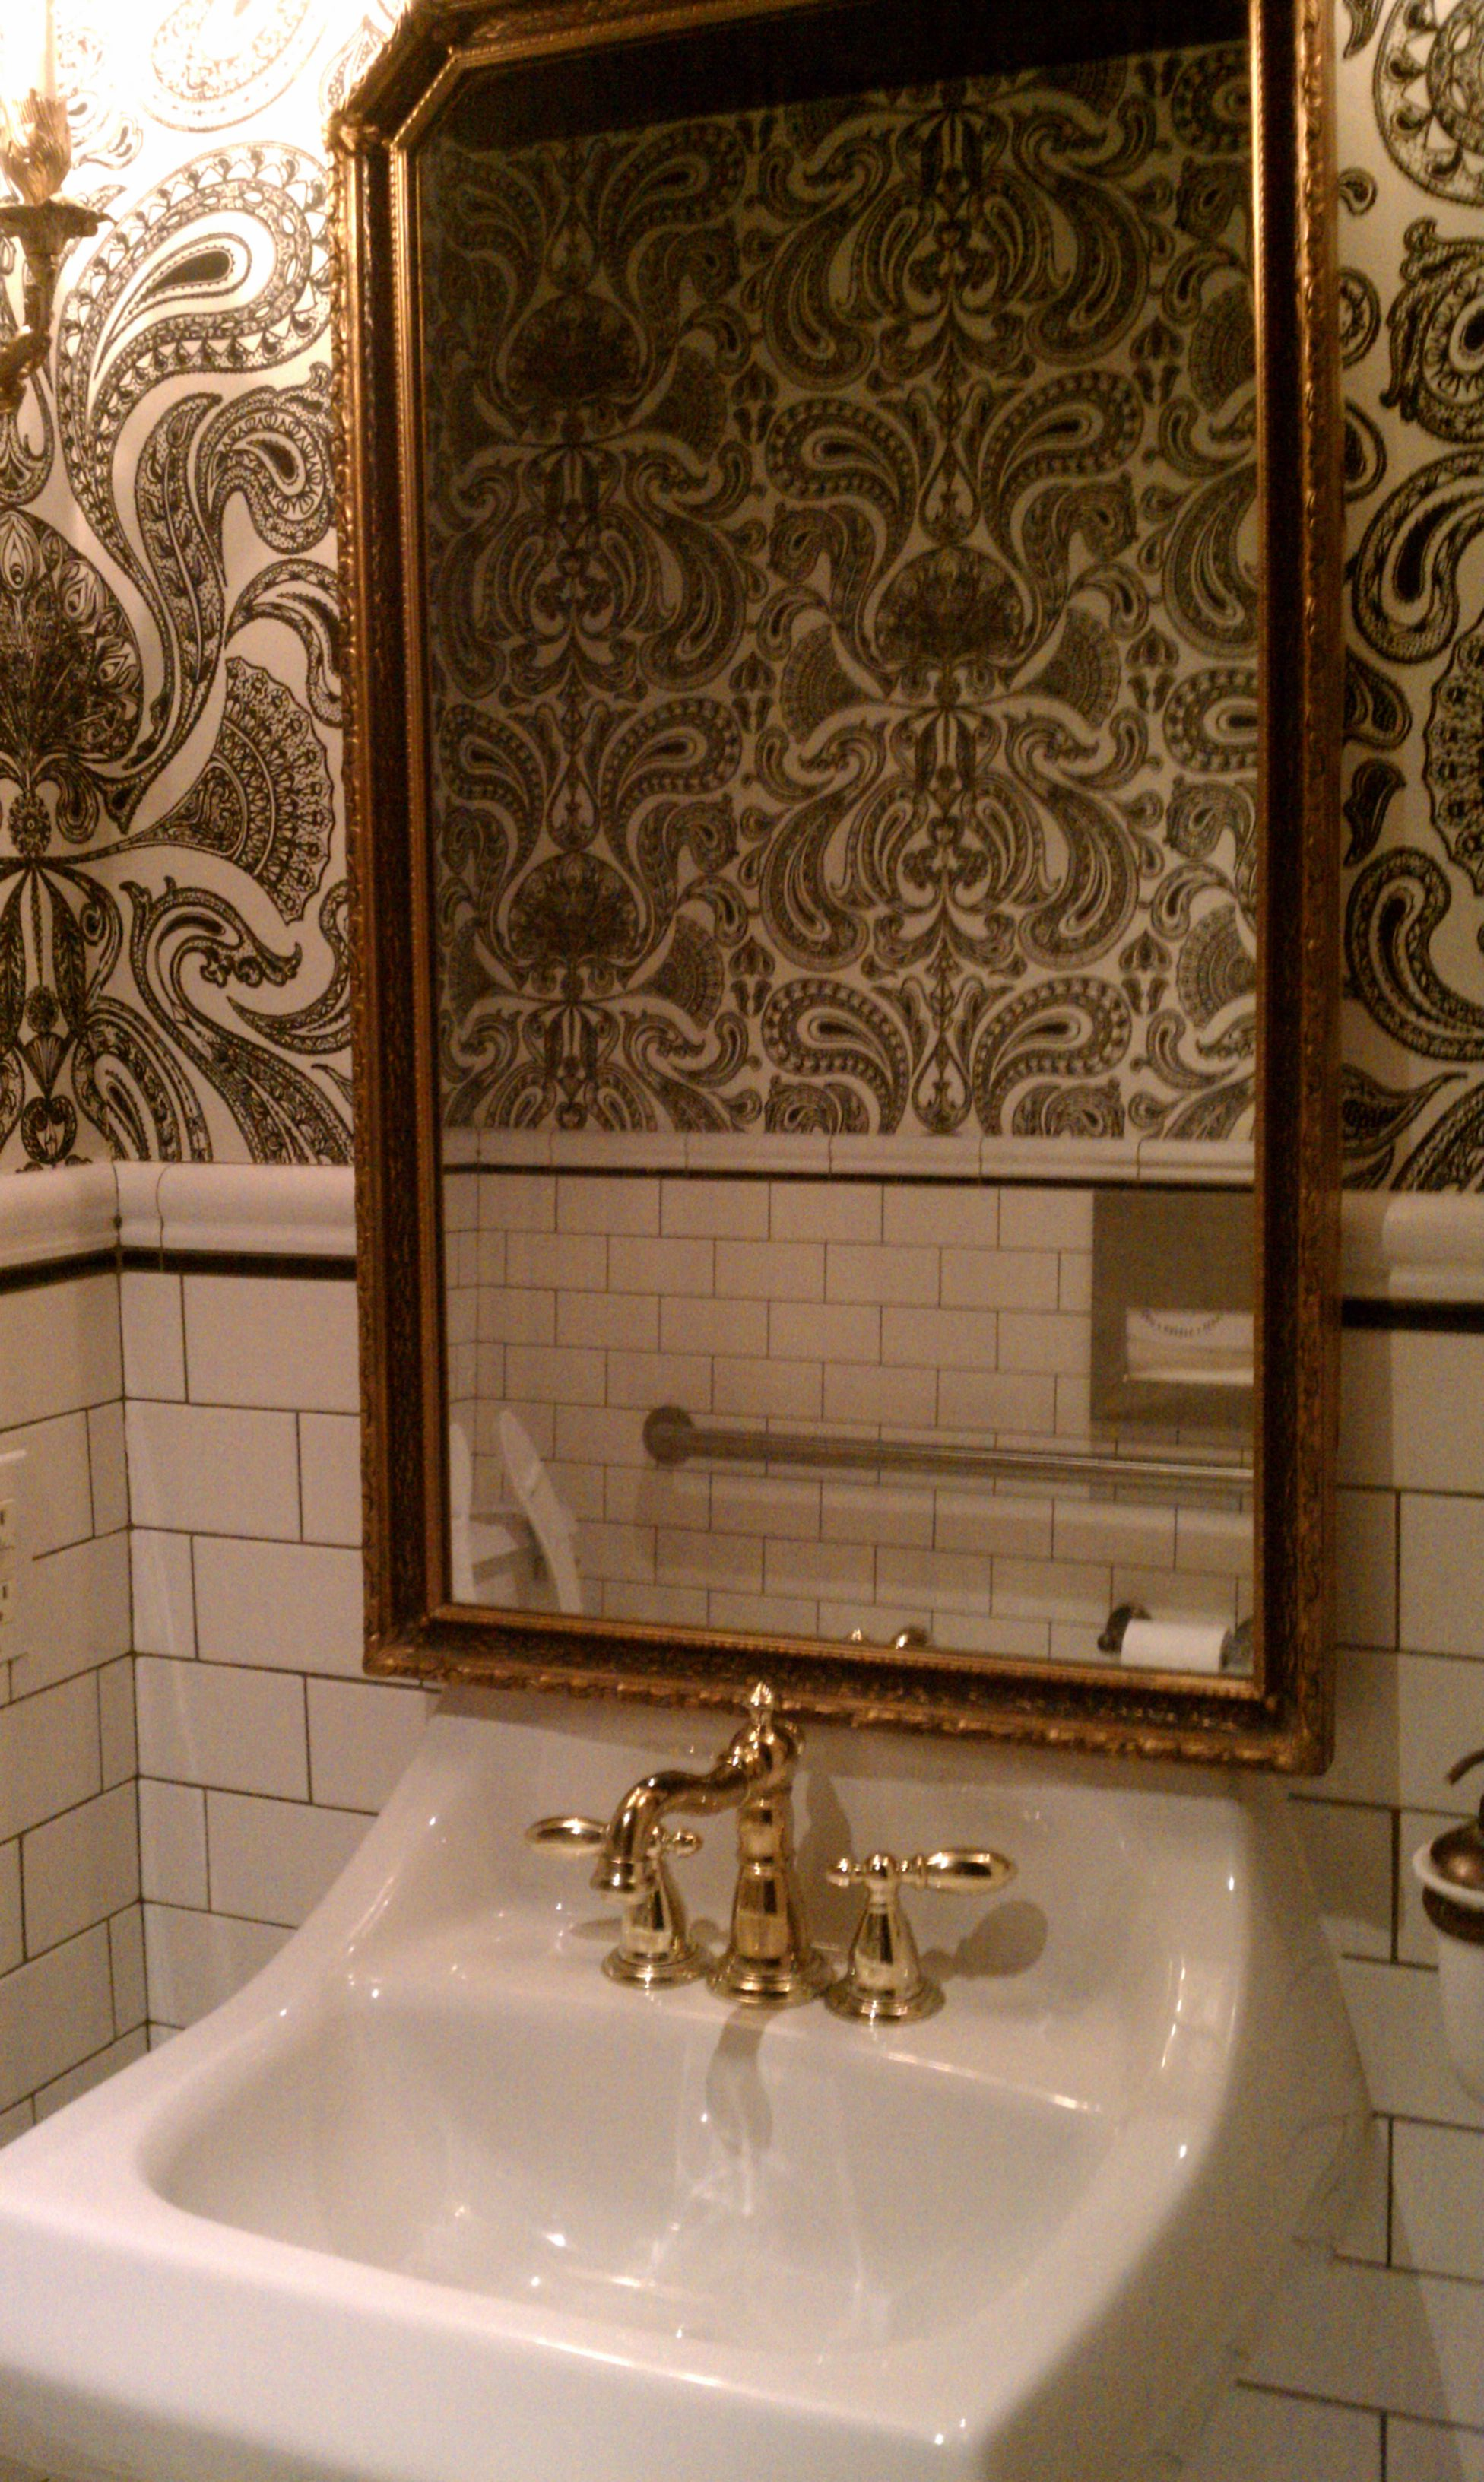 Bathroom mirrors honolulu with excellent image in thailand for Bath remodel hawaii